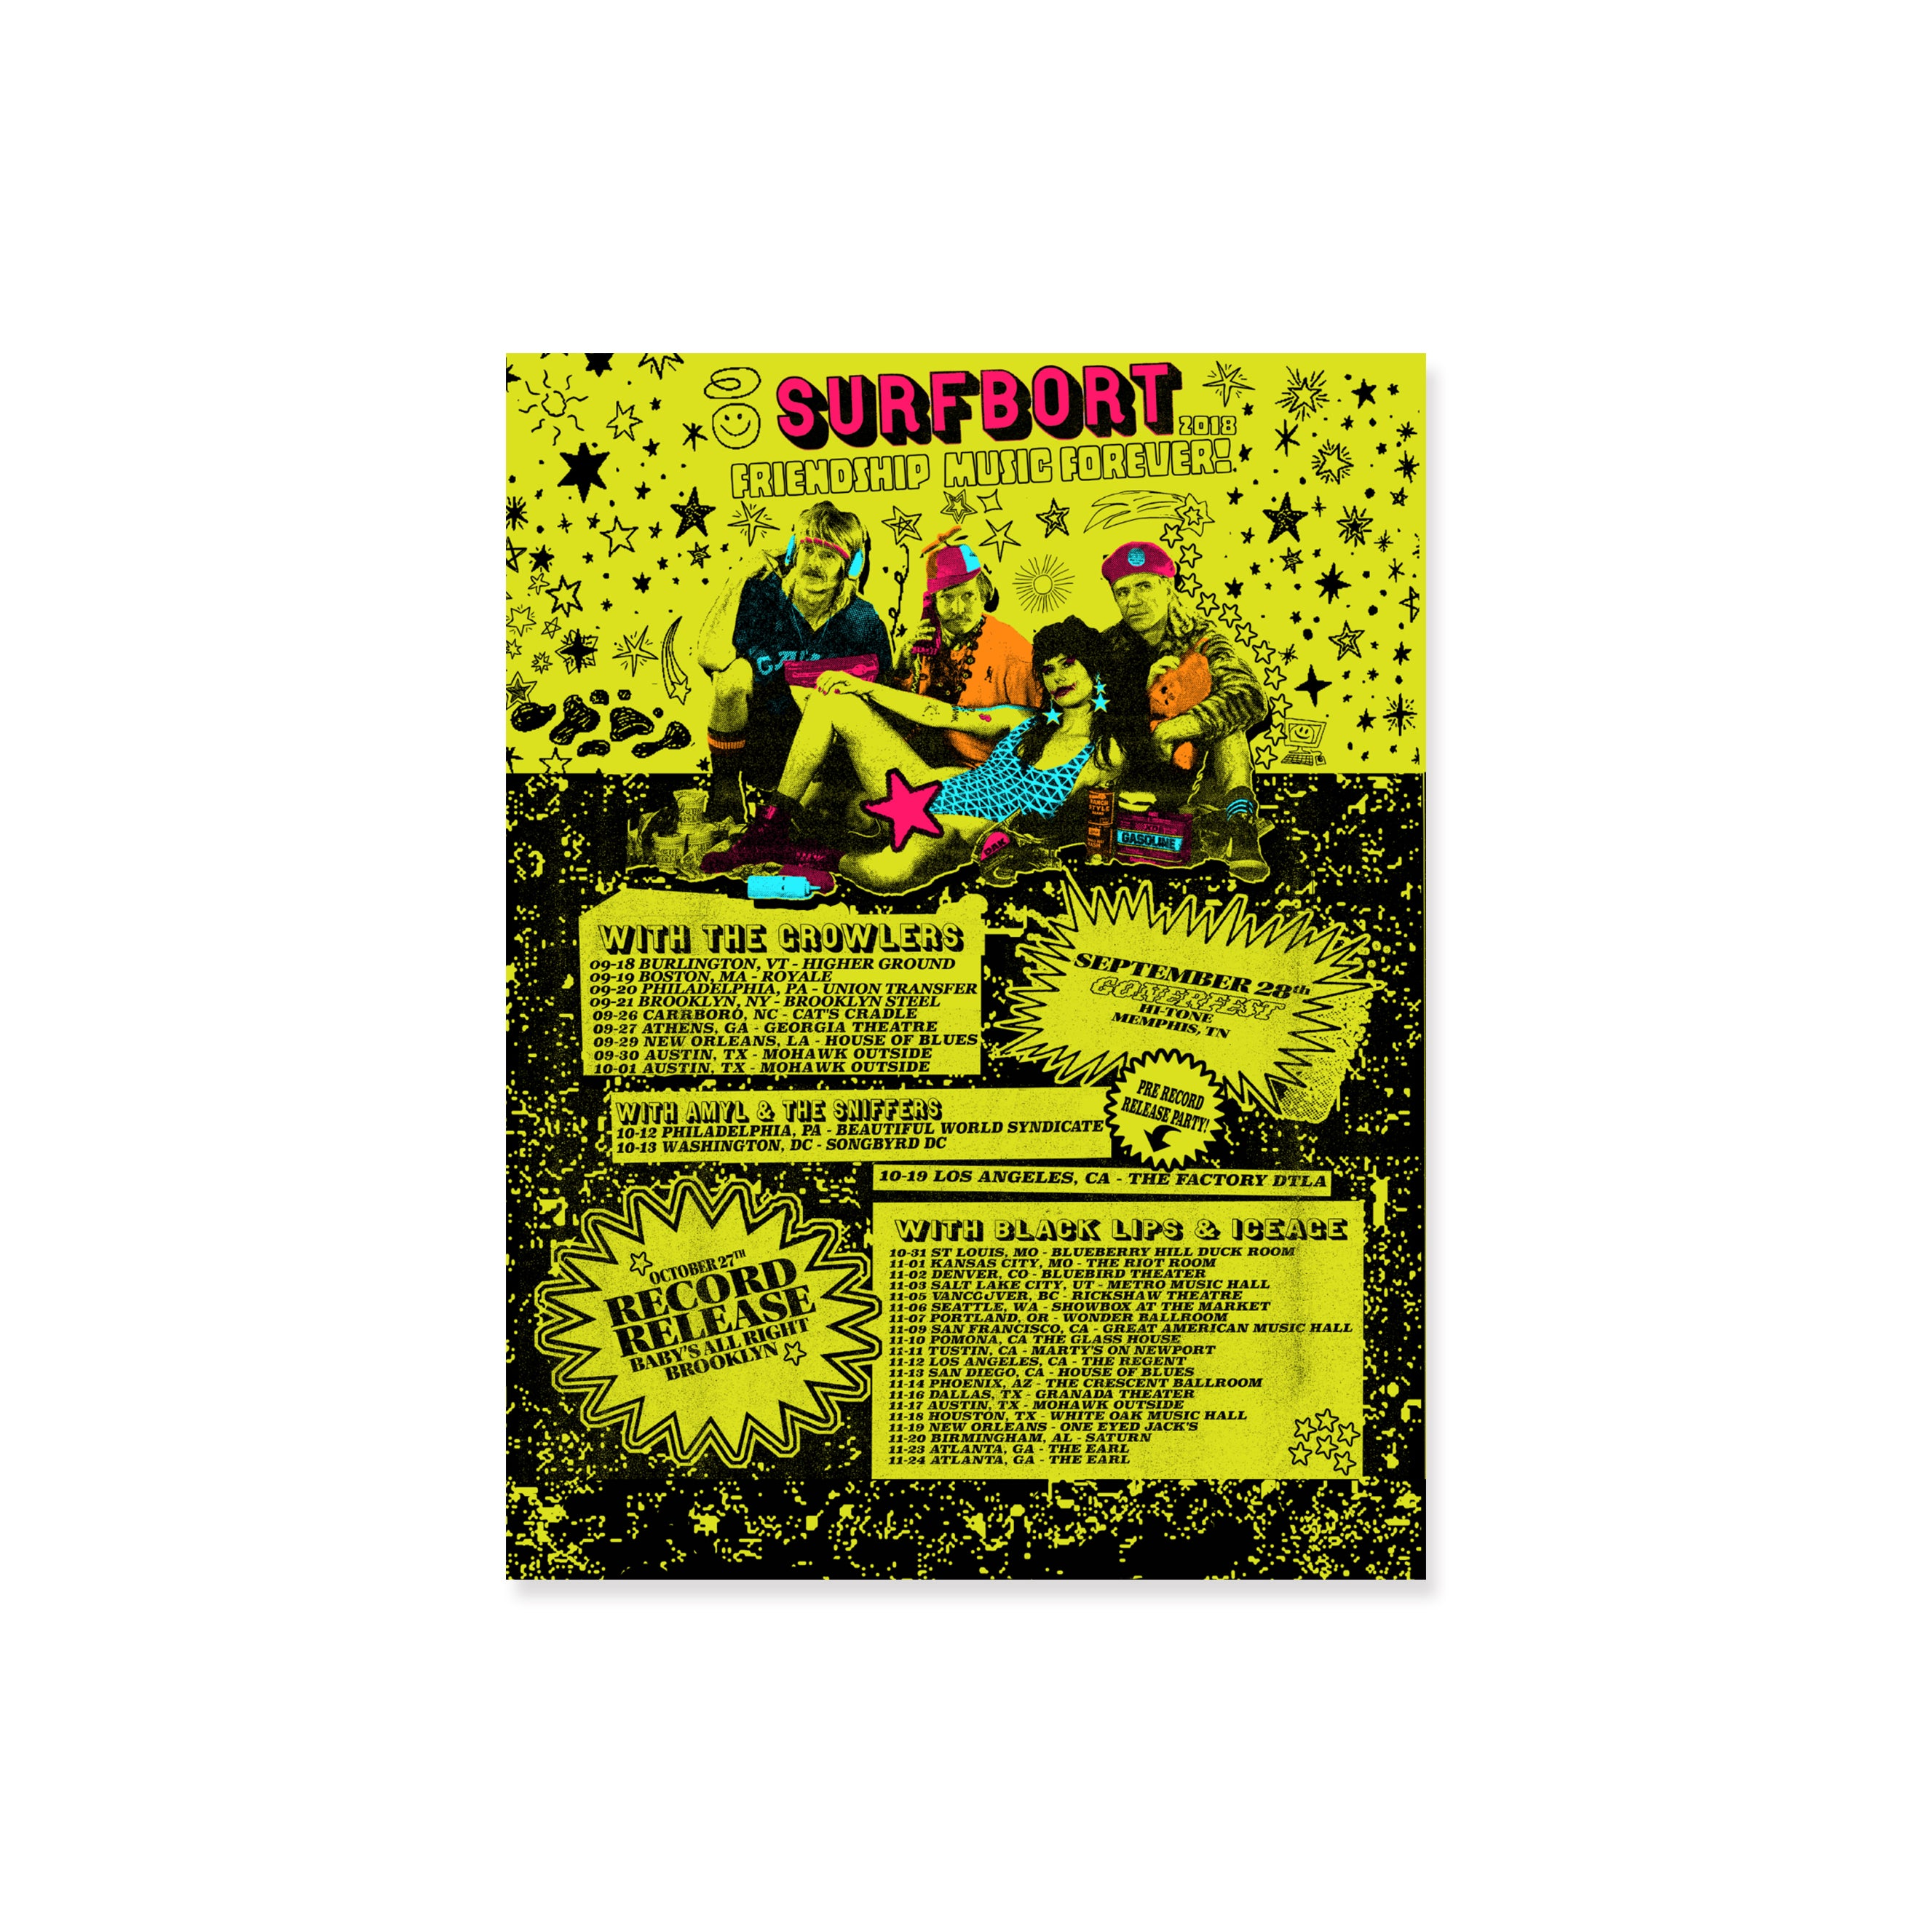 Surfbort 'Friendship Music' Tour Poster